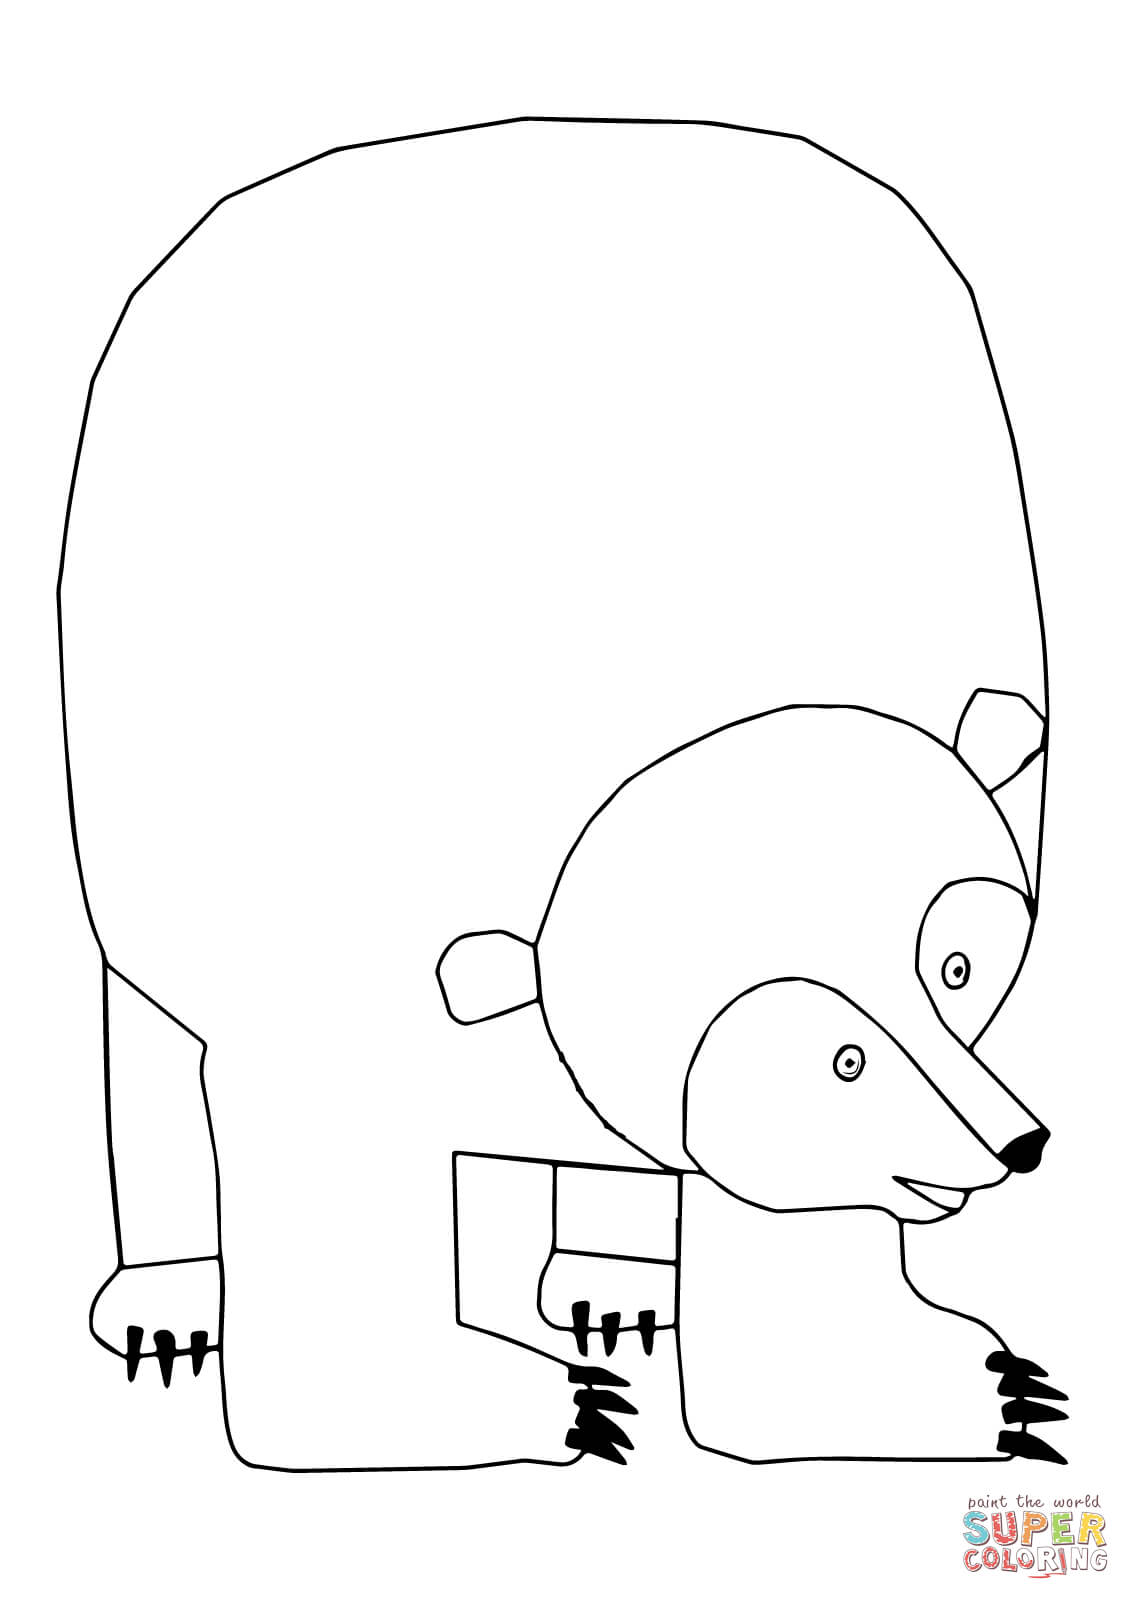 Polar bear face drawing at getdrawings free for personal use 1131x1600 polar bear polar bear what do you hear coloring pages maxwellsz